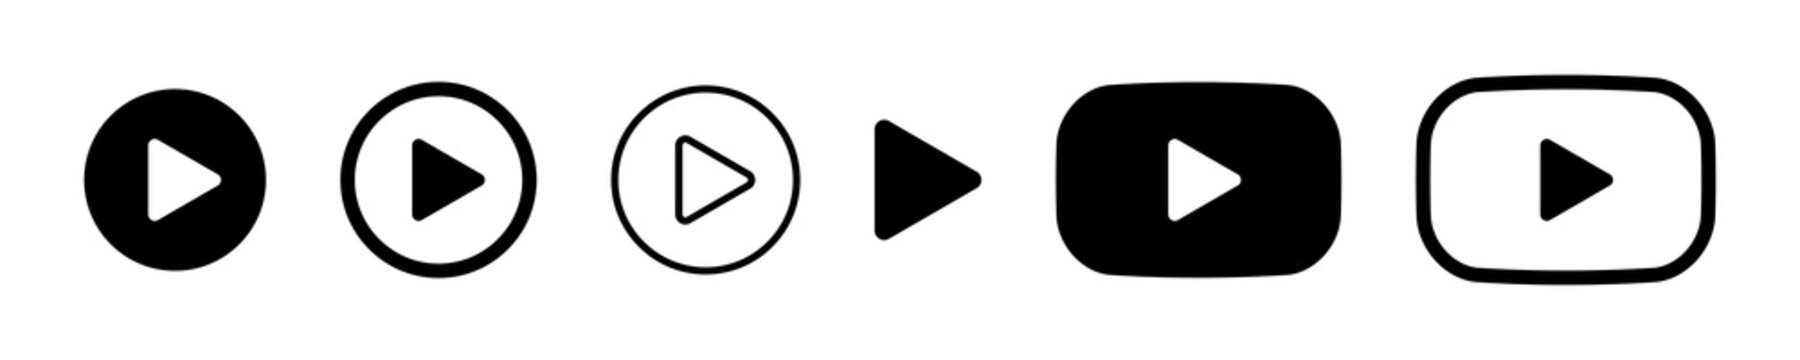 play button icon vector symbol. music video start sign.